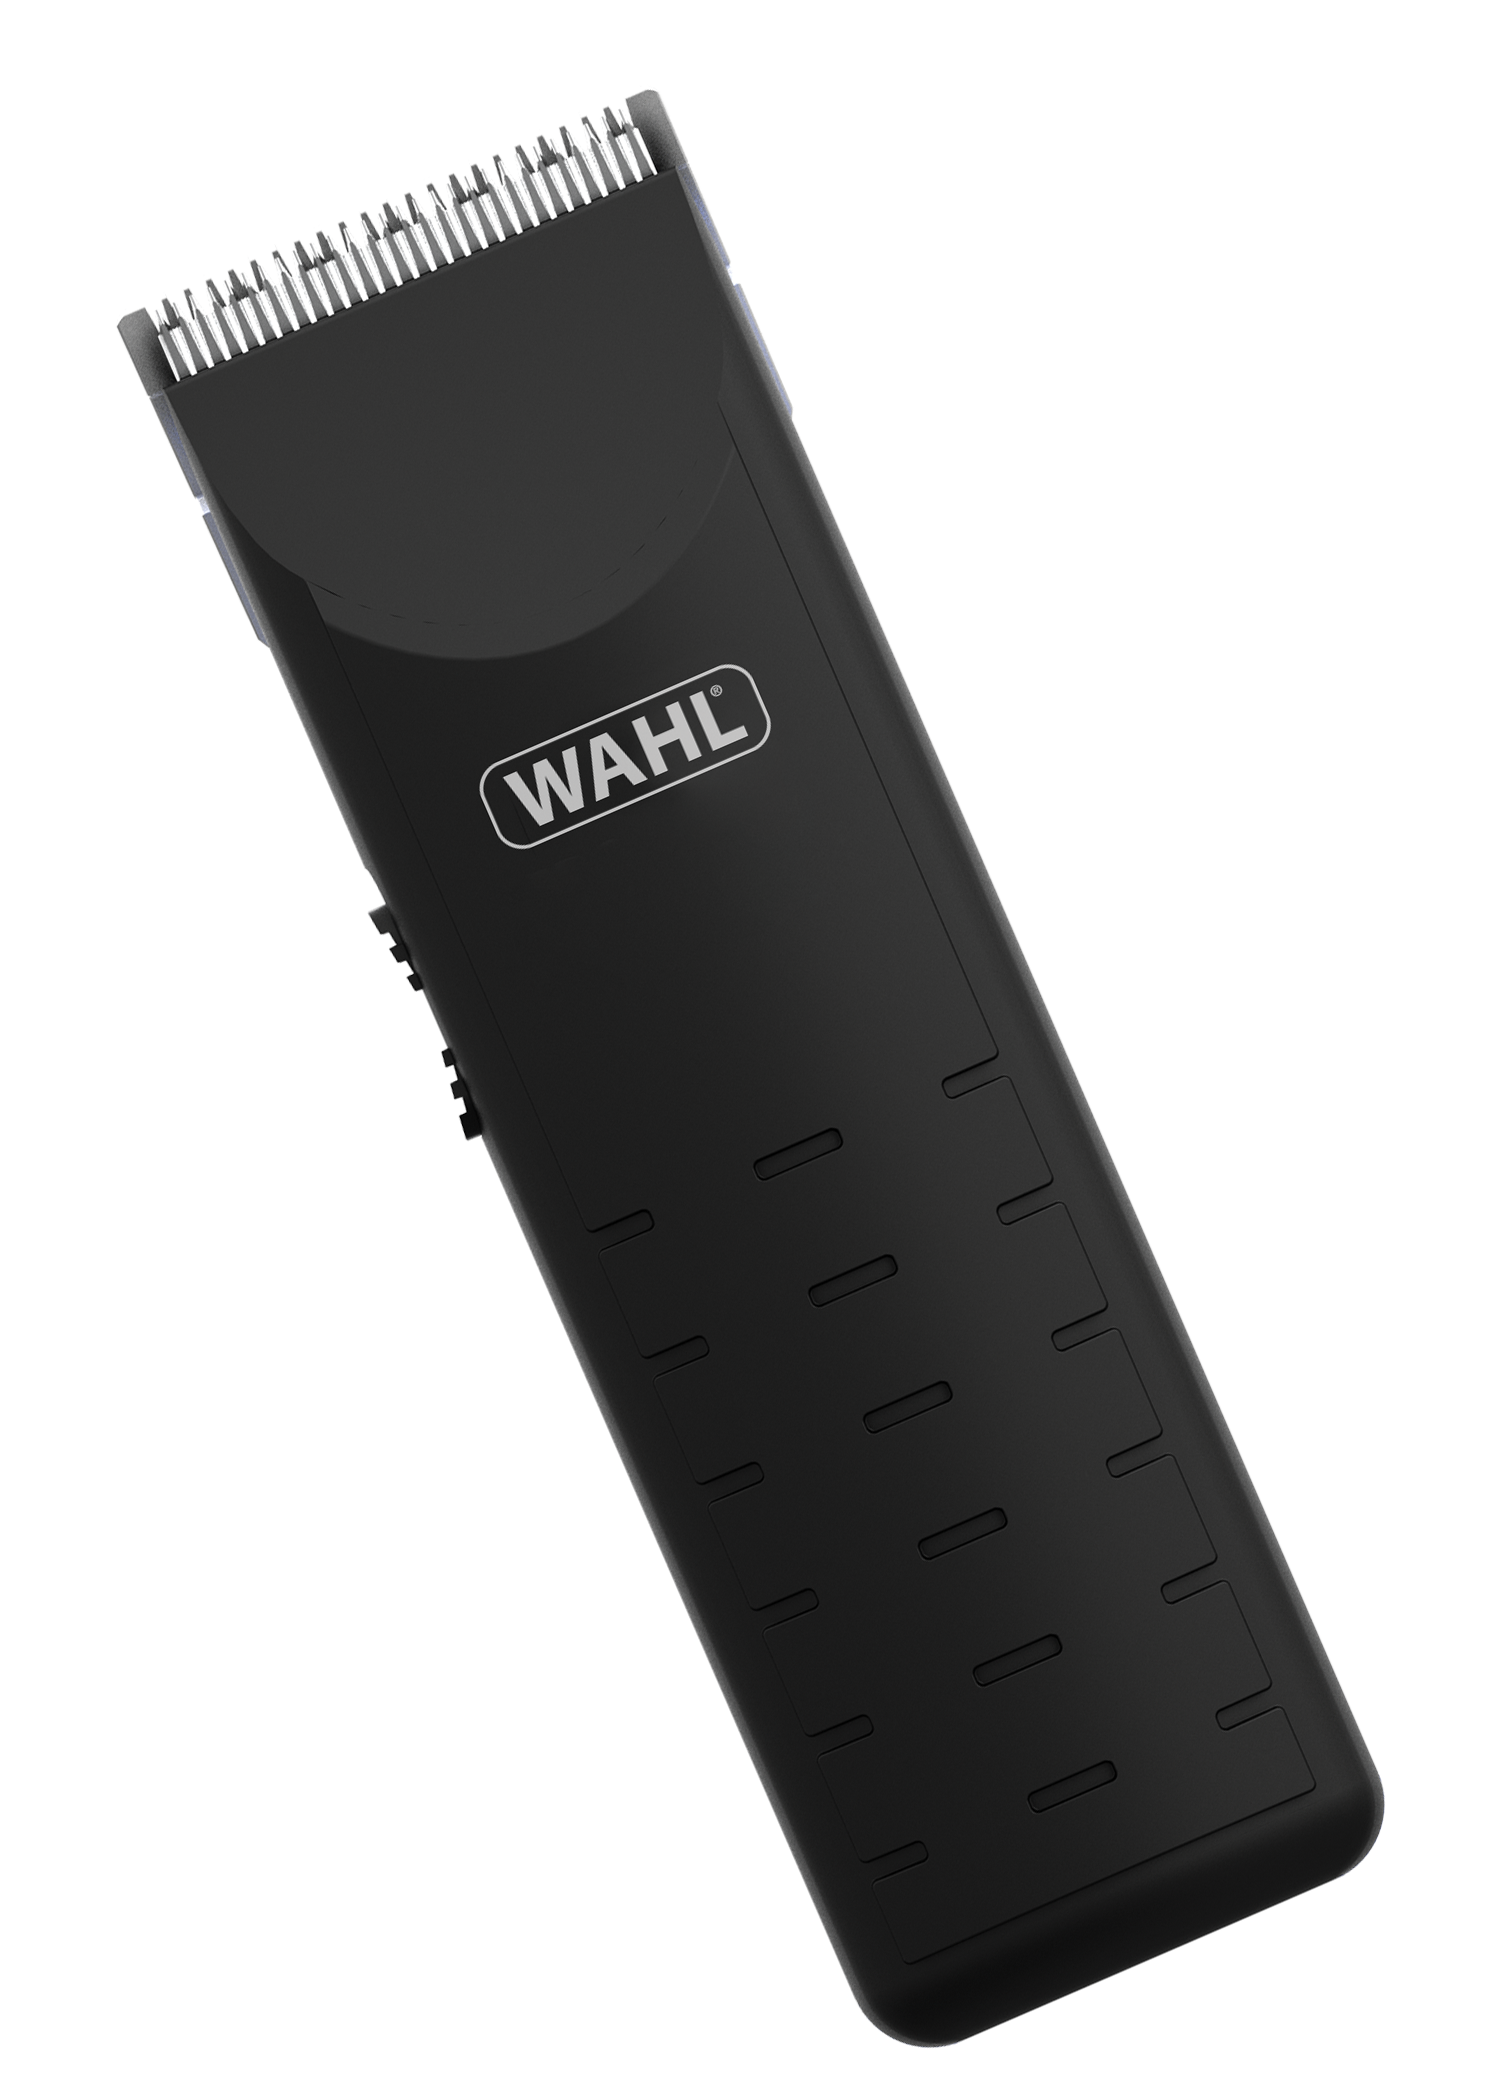 Amazon Uk Wahl Dog Clippers